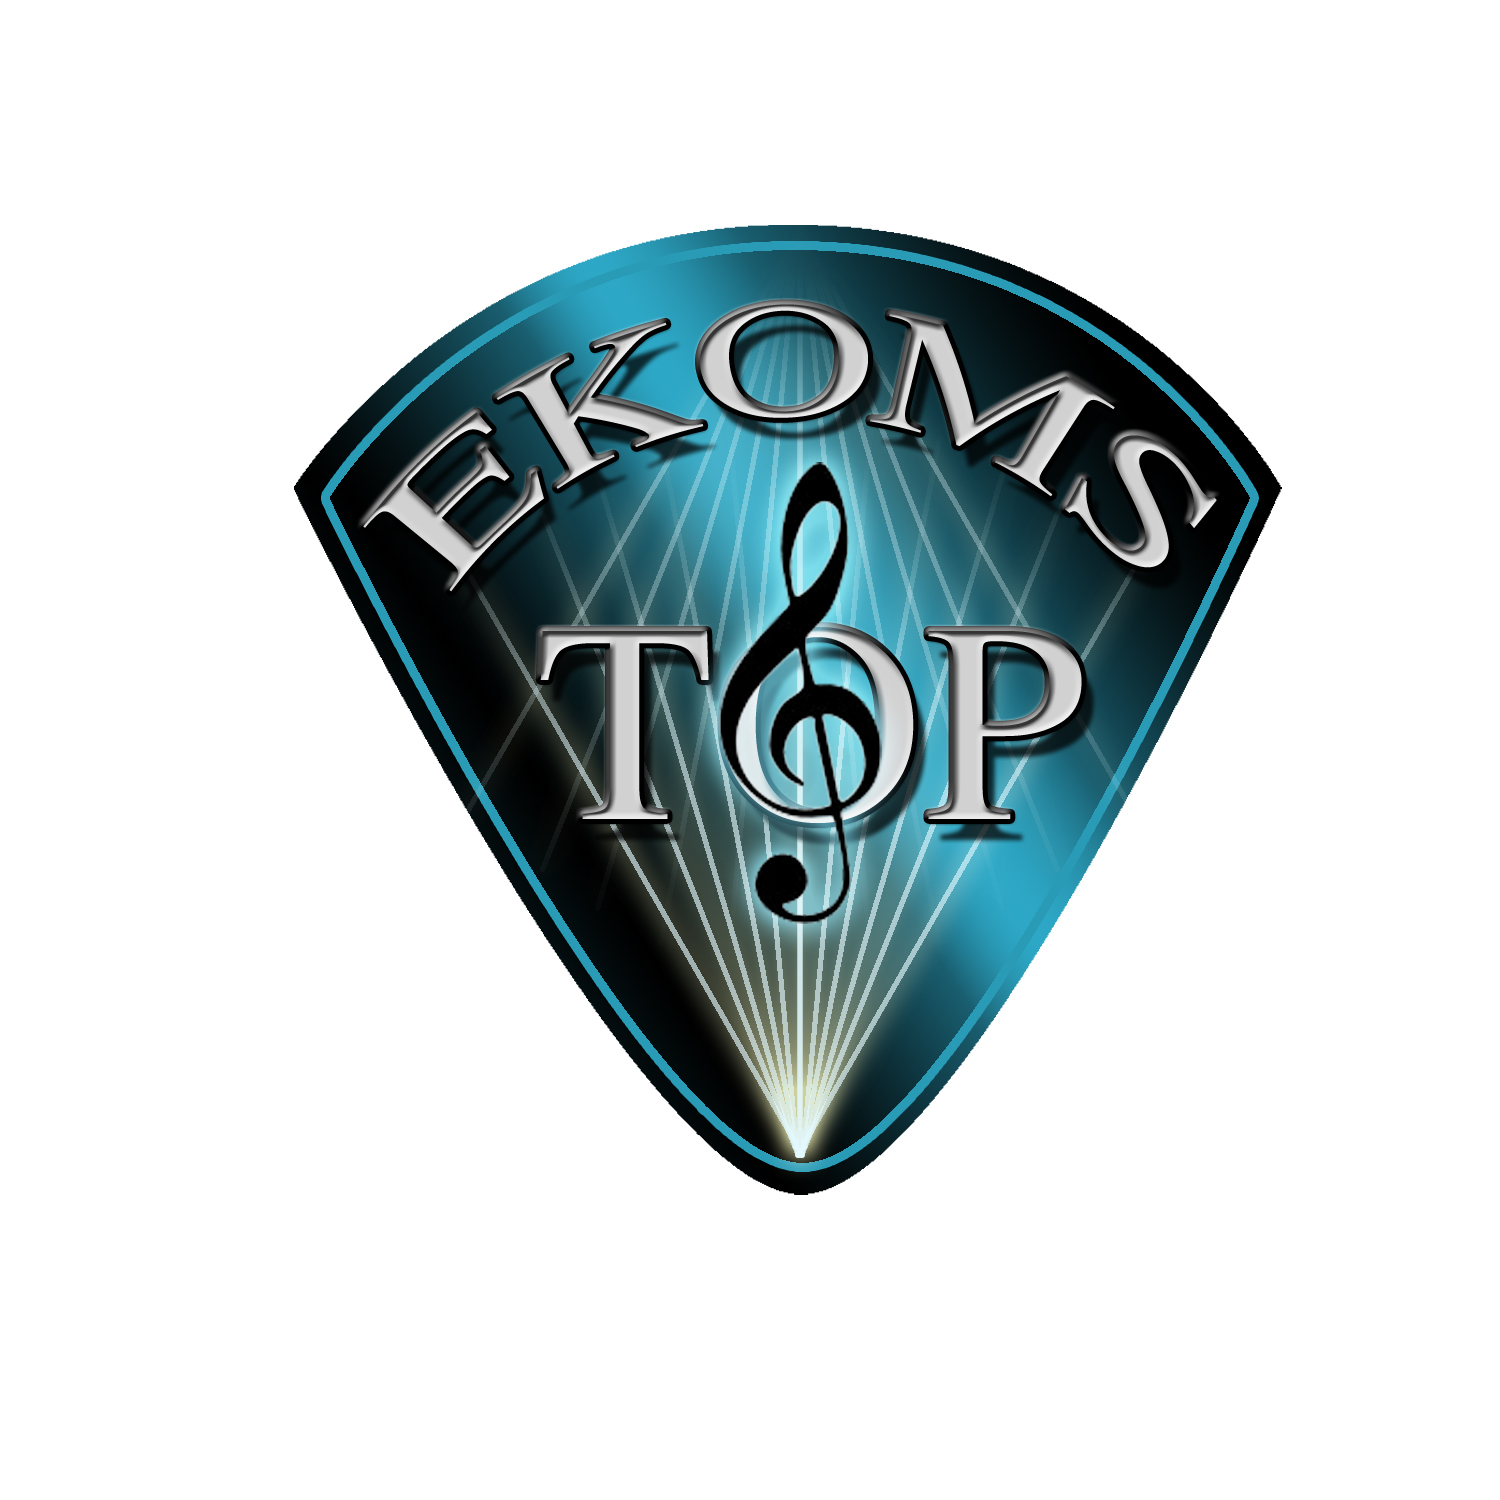 Ekoms Top: Jam Band. Phish, Grateful Dead, Jam Band Music Recorded Live.